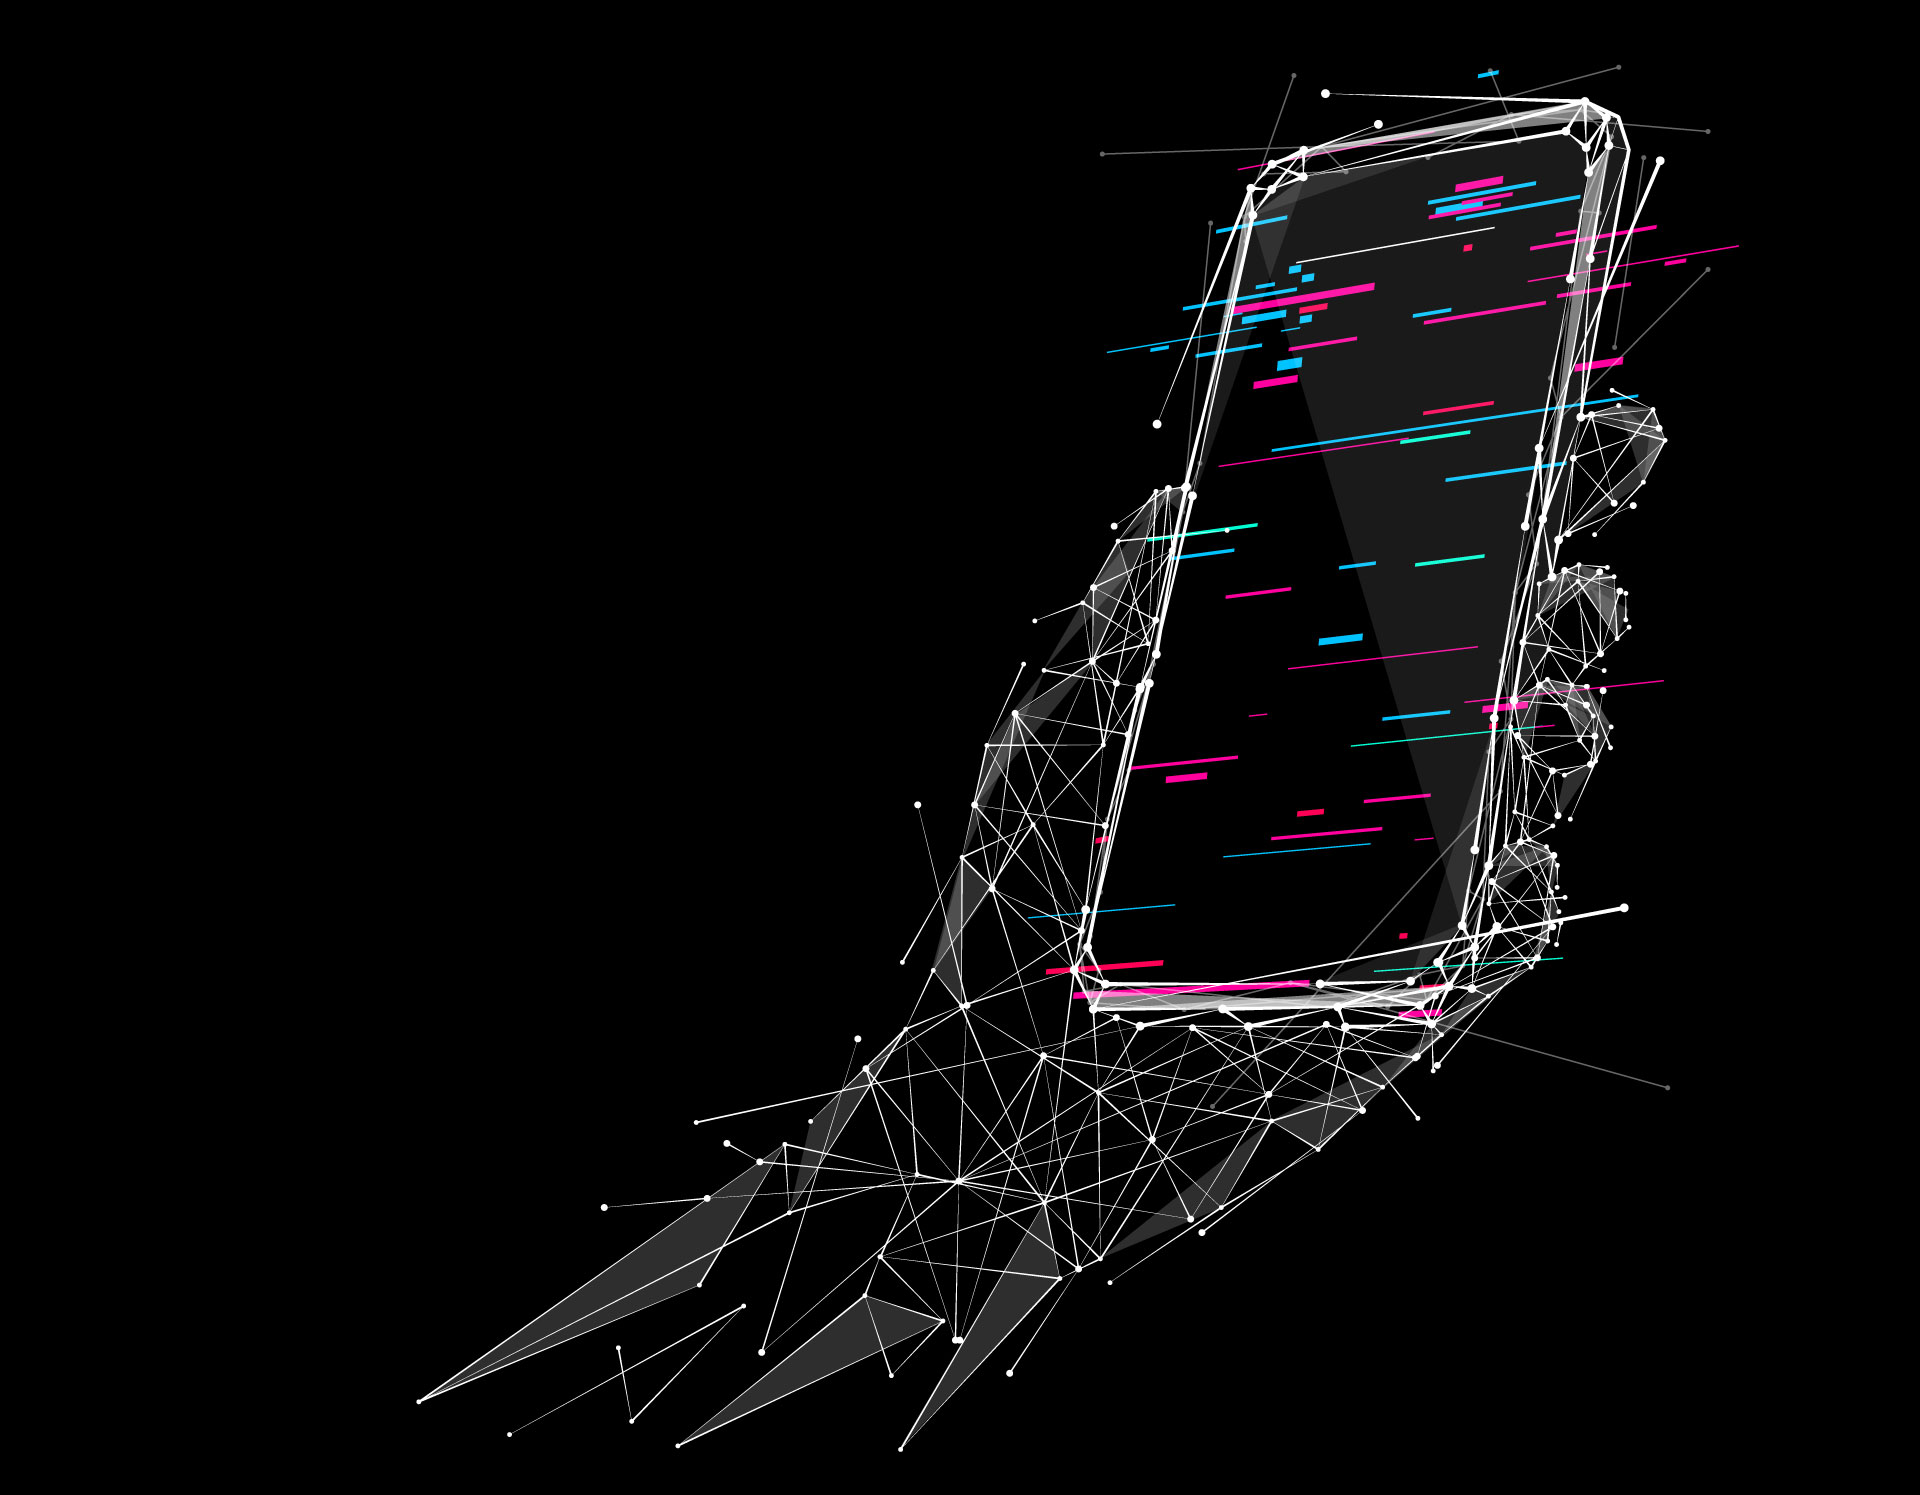 There's more to 5G than speed: Why network slicing could be a game changer